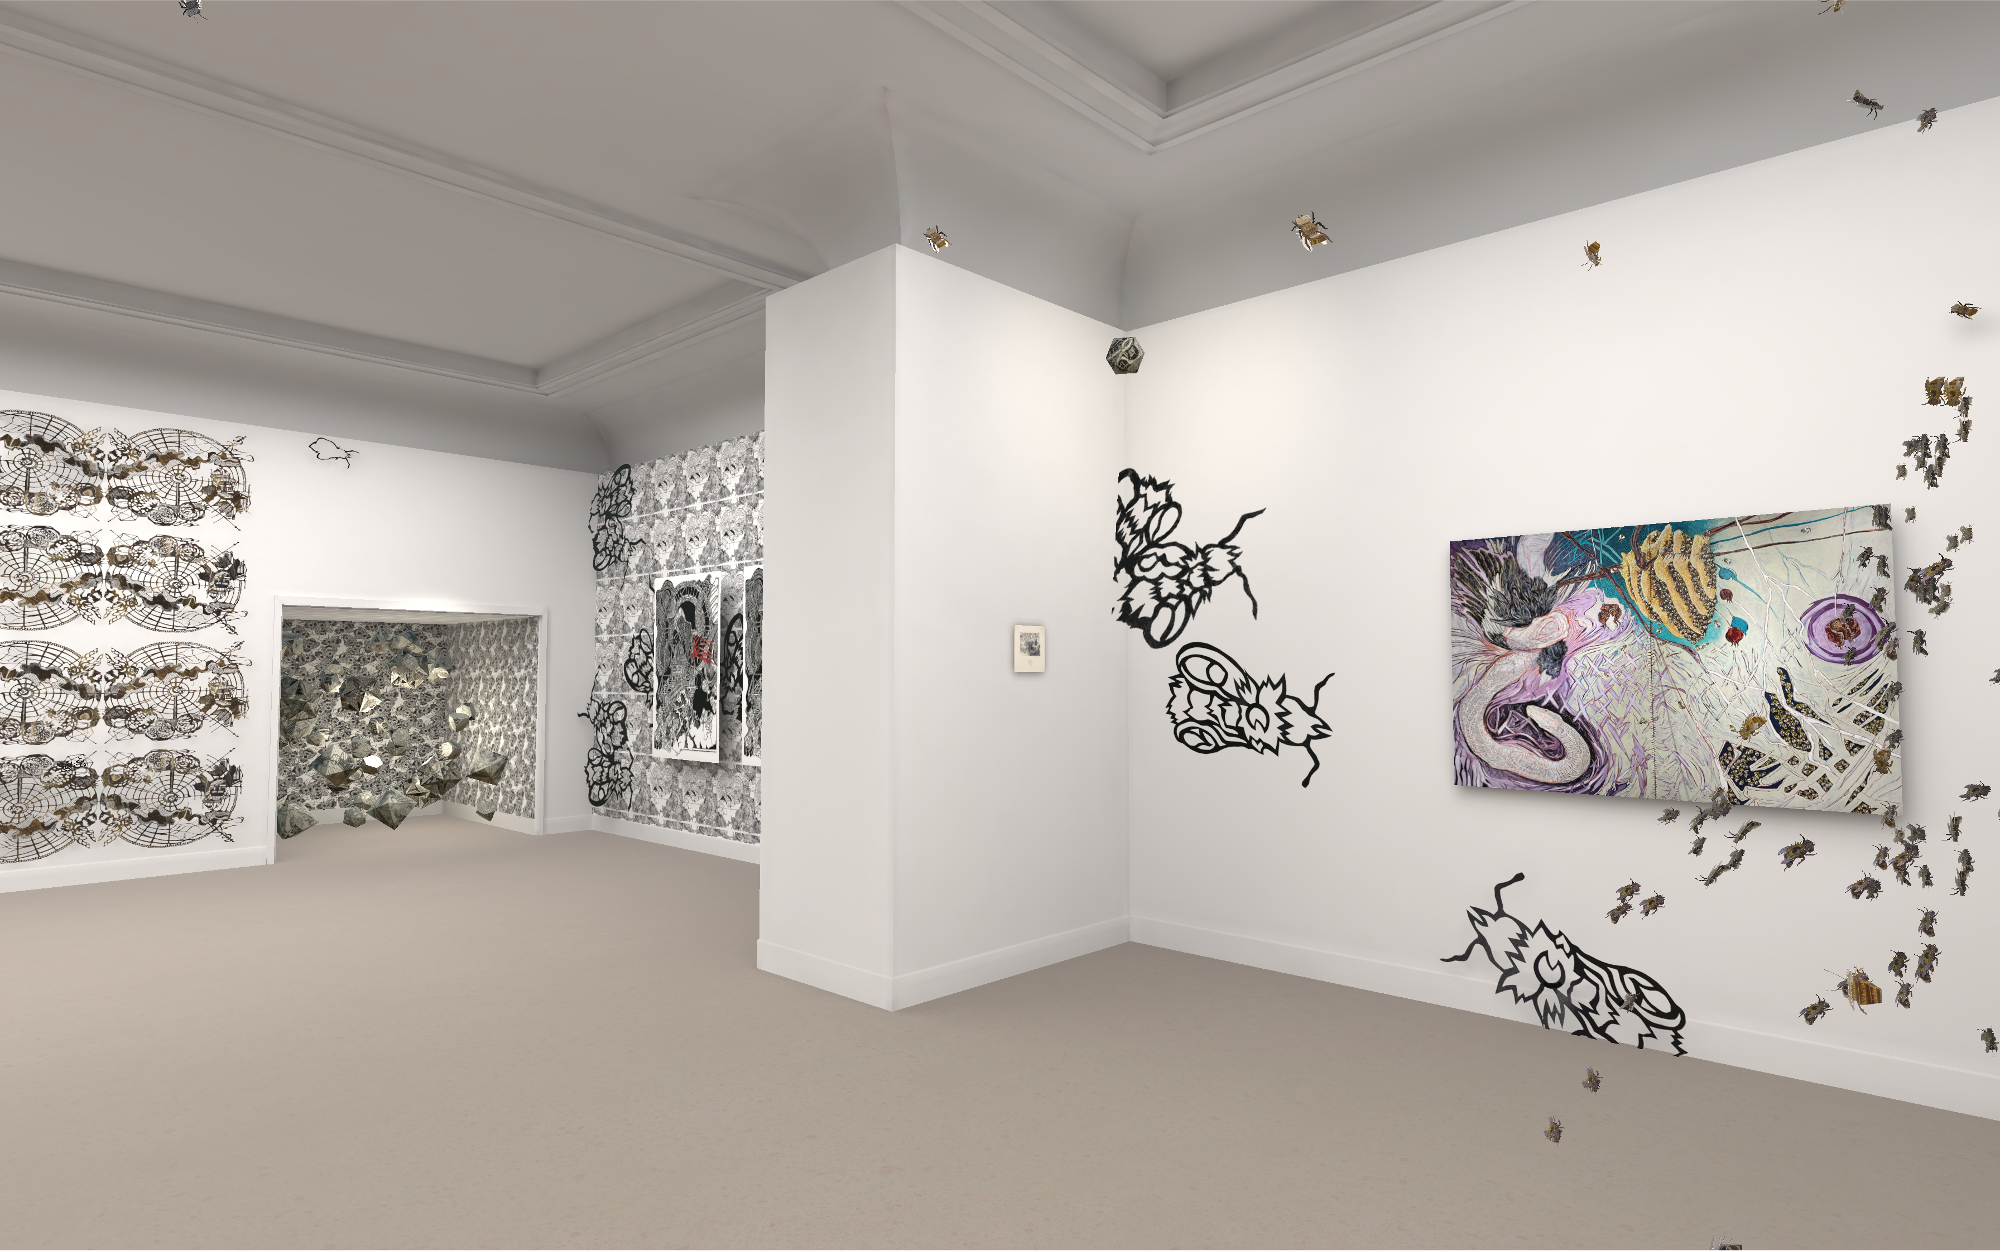 View of Adrien Rhodes' installation as SECAC's 2020 Artist's Fellowship Exhibition in the Virtual Anderson